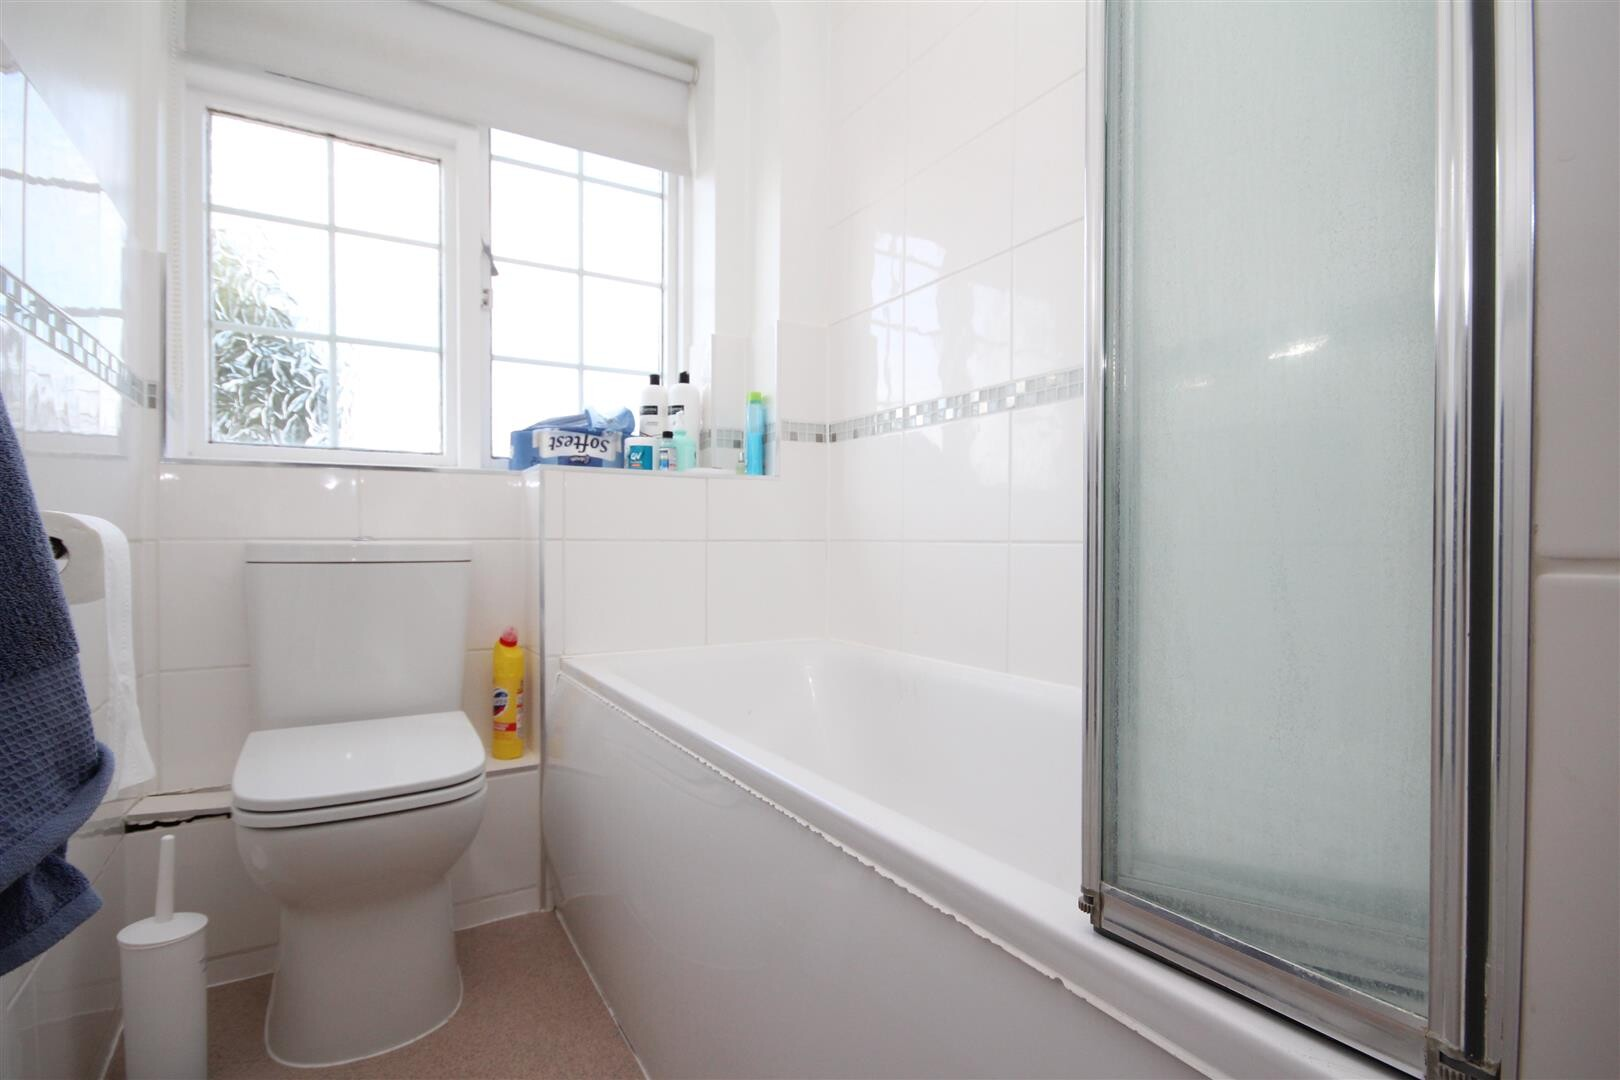 3 bedroom student house in Guildford, Surrey